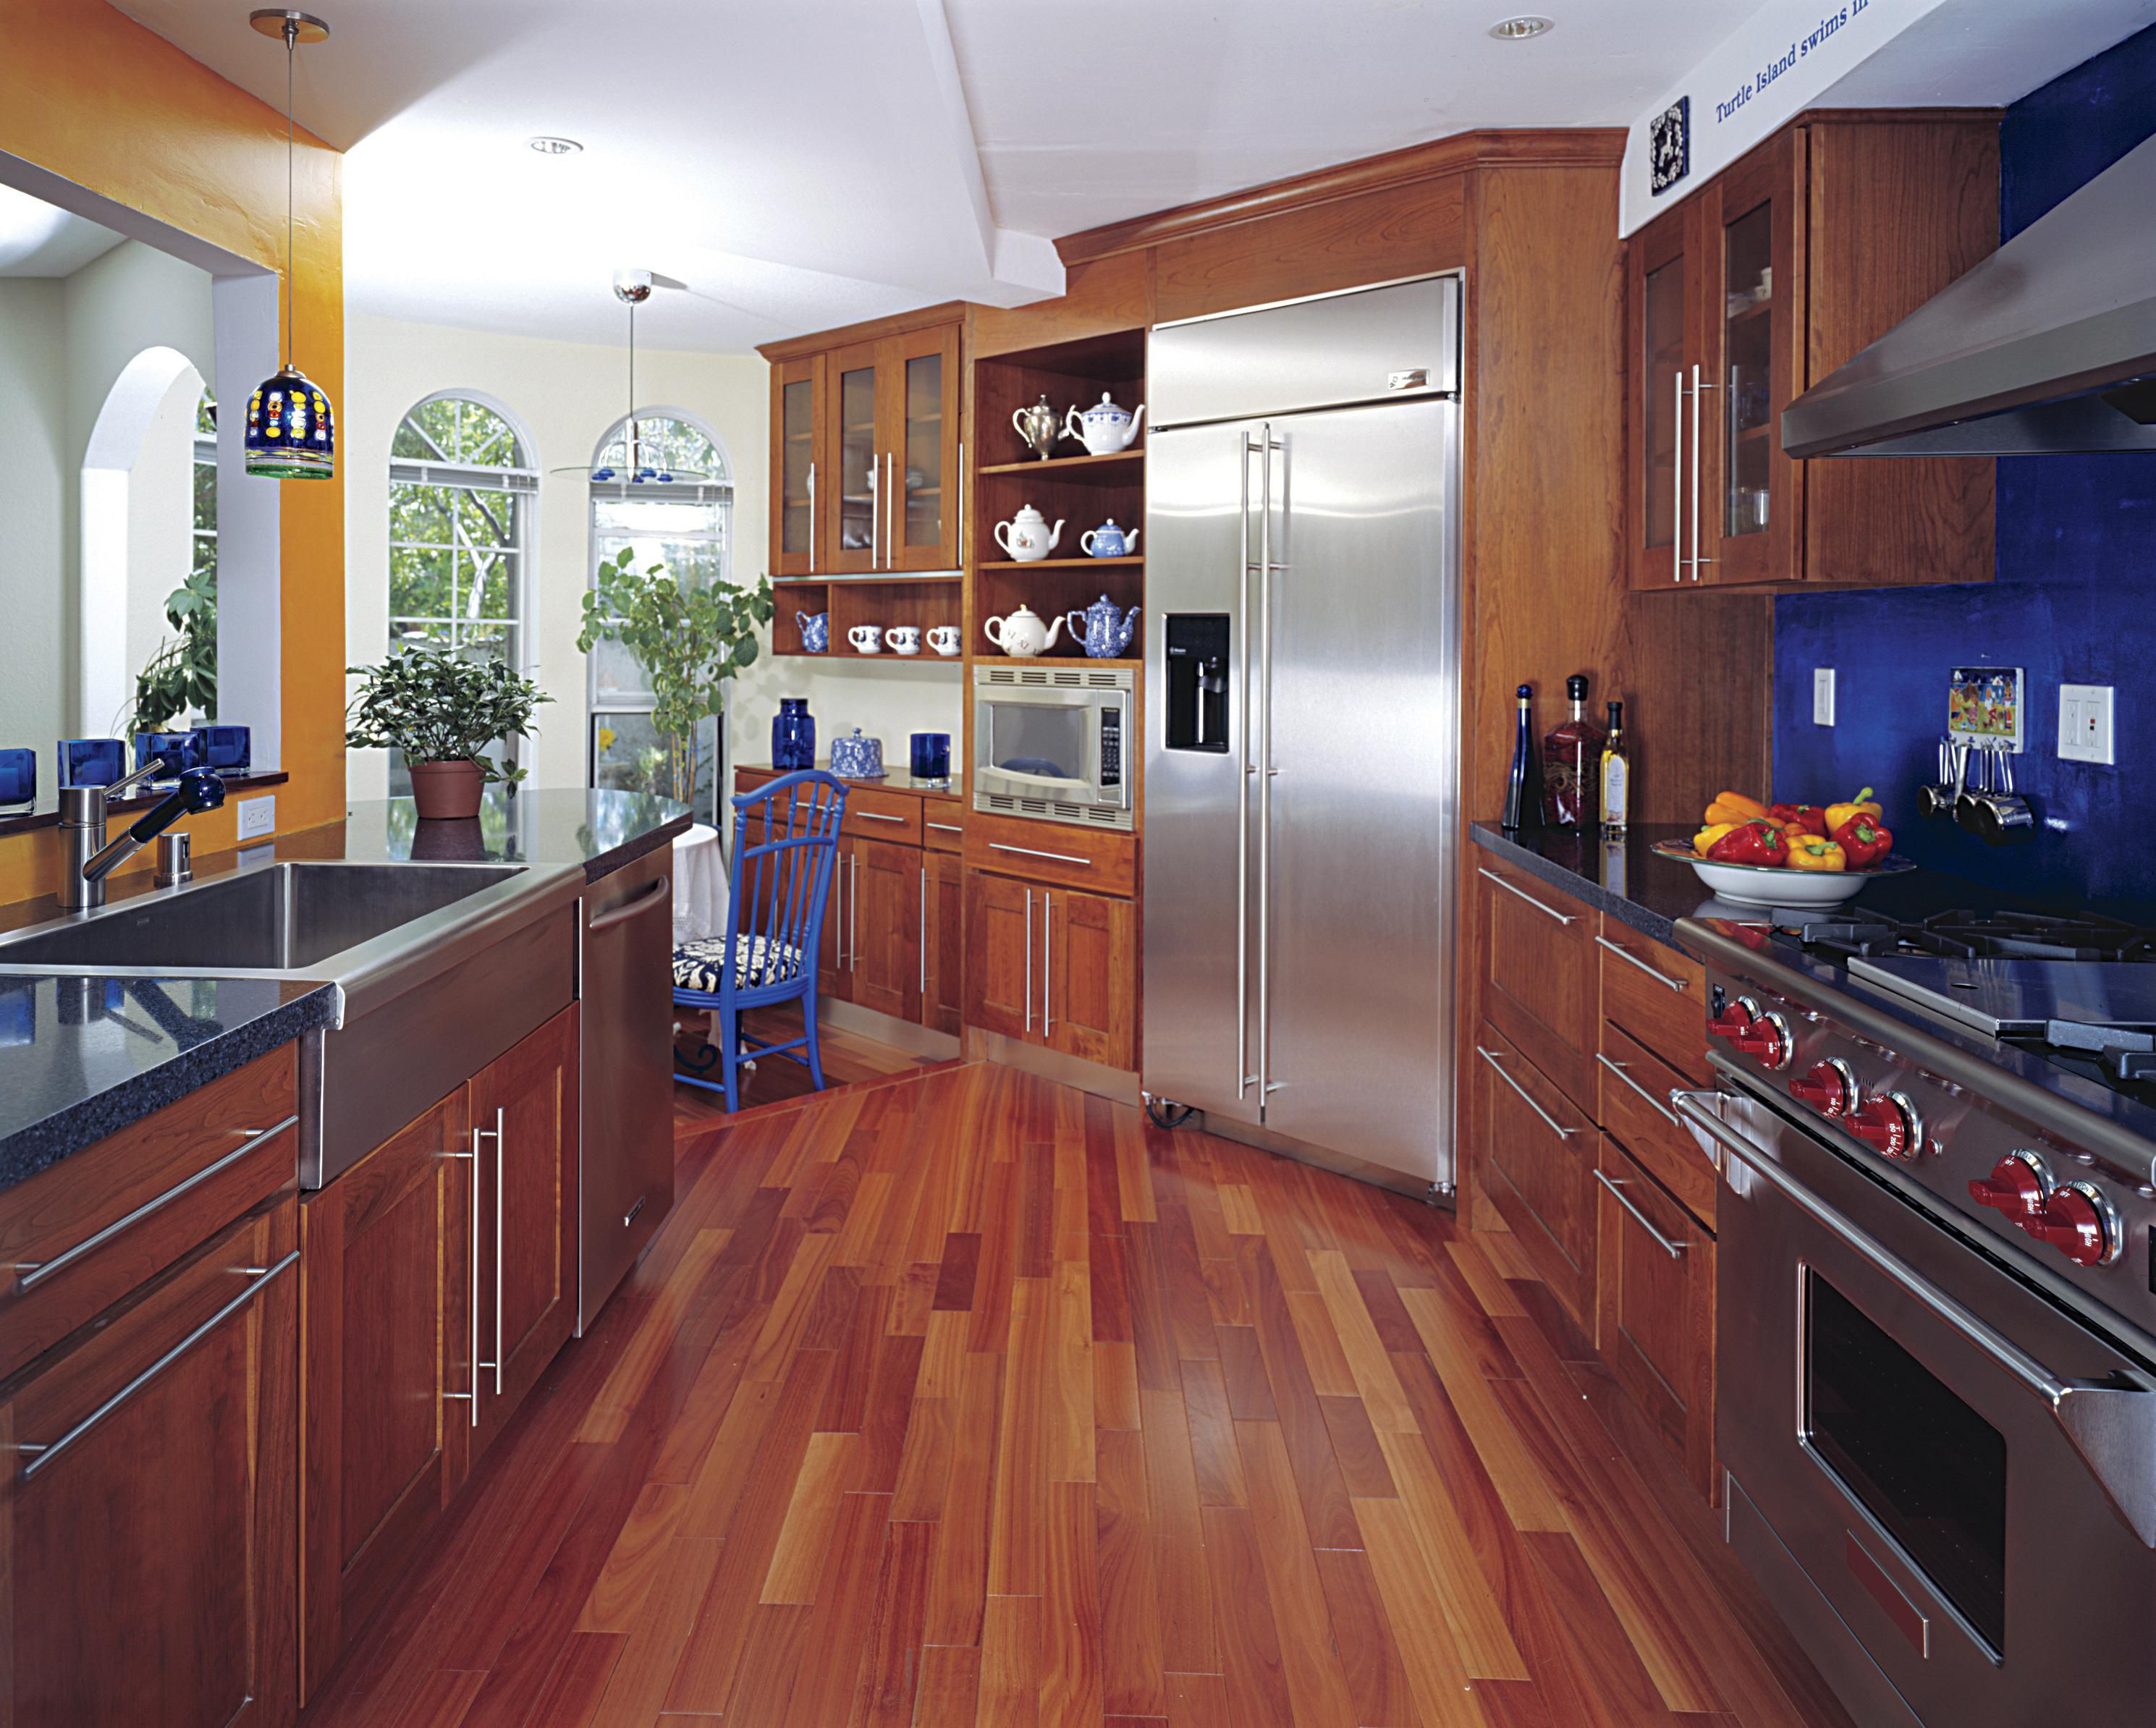 dark hardwood floors with maple cabinets of hardwood floor in a kitchen is this allowed pertaining to 186828472 56a49f3a5f9b58b7d0d7e142